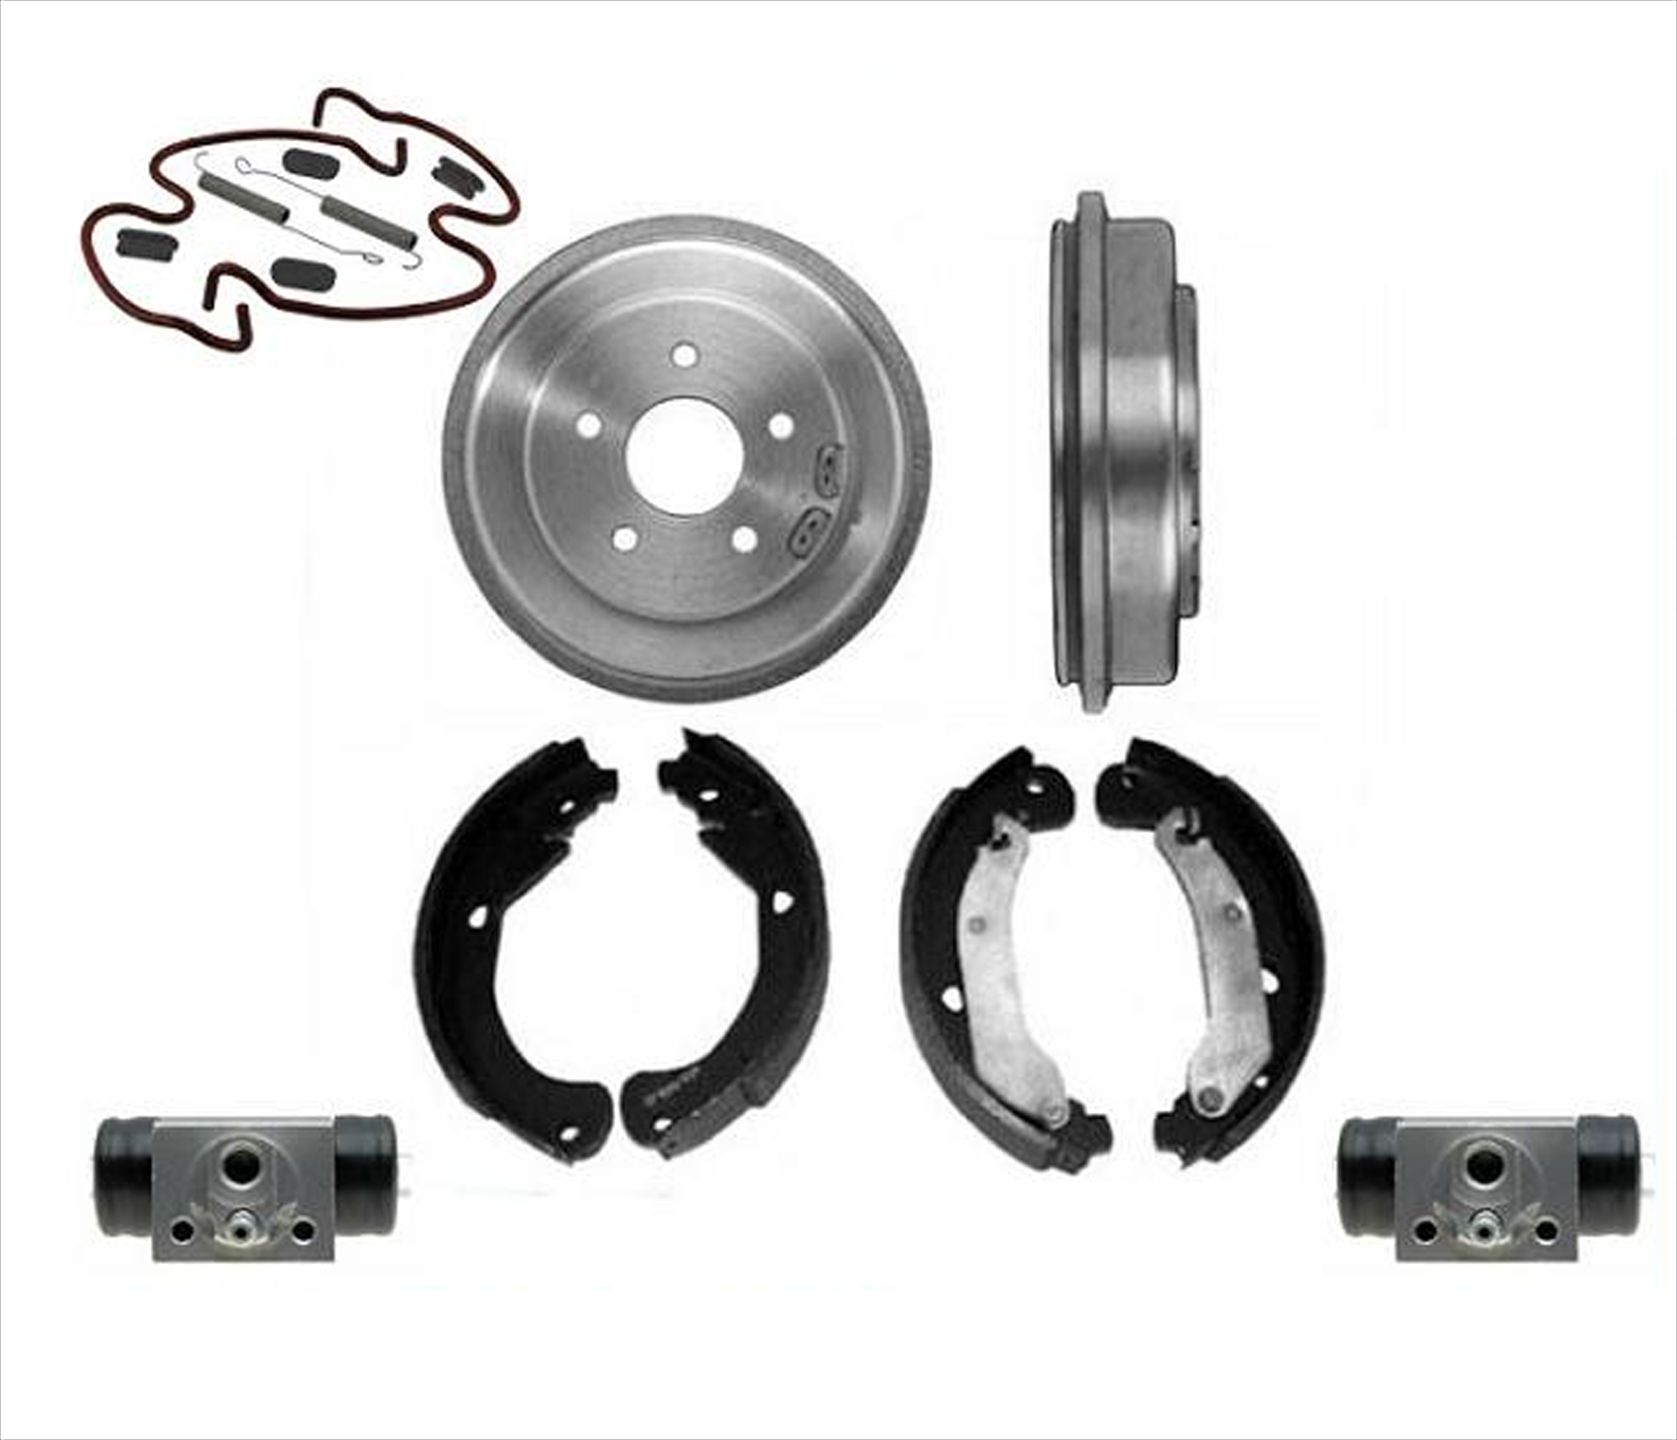 Fits For 2005-2007 Malibu 2 Rear Brake Drums and New Shoes Springs 4pc